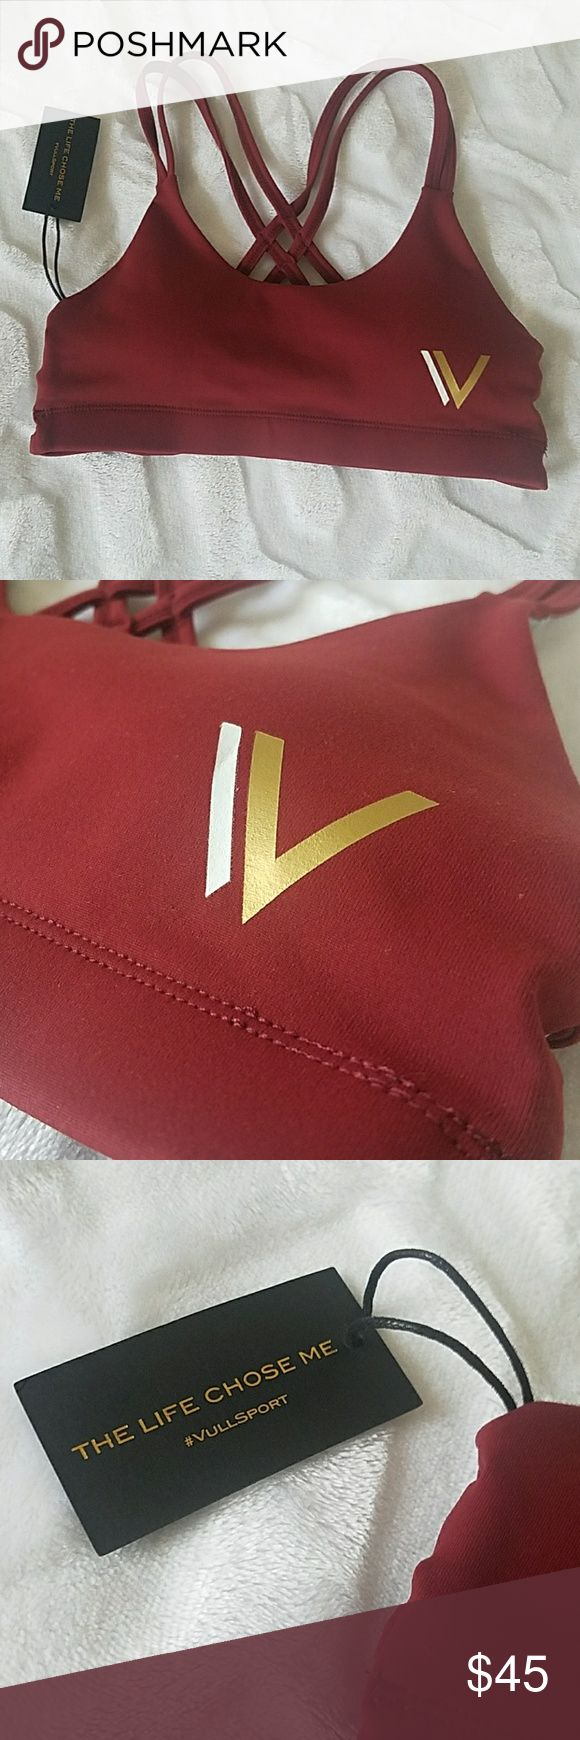 NWT Vull Caged Sports Bra Vull Sport brand. Maroon color with gold/white logo graphic on front side. Strappy and caged back detail! Heathered grey interior with removeable pads. This is NWT, women's size XS Vull Sport Intimates & Sleepwear Bras